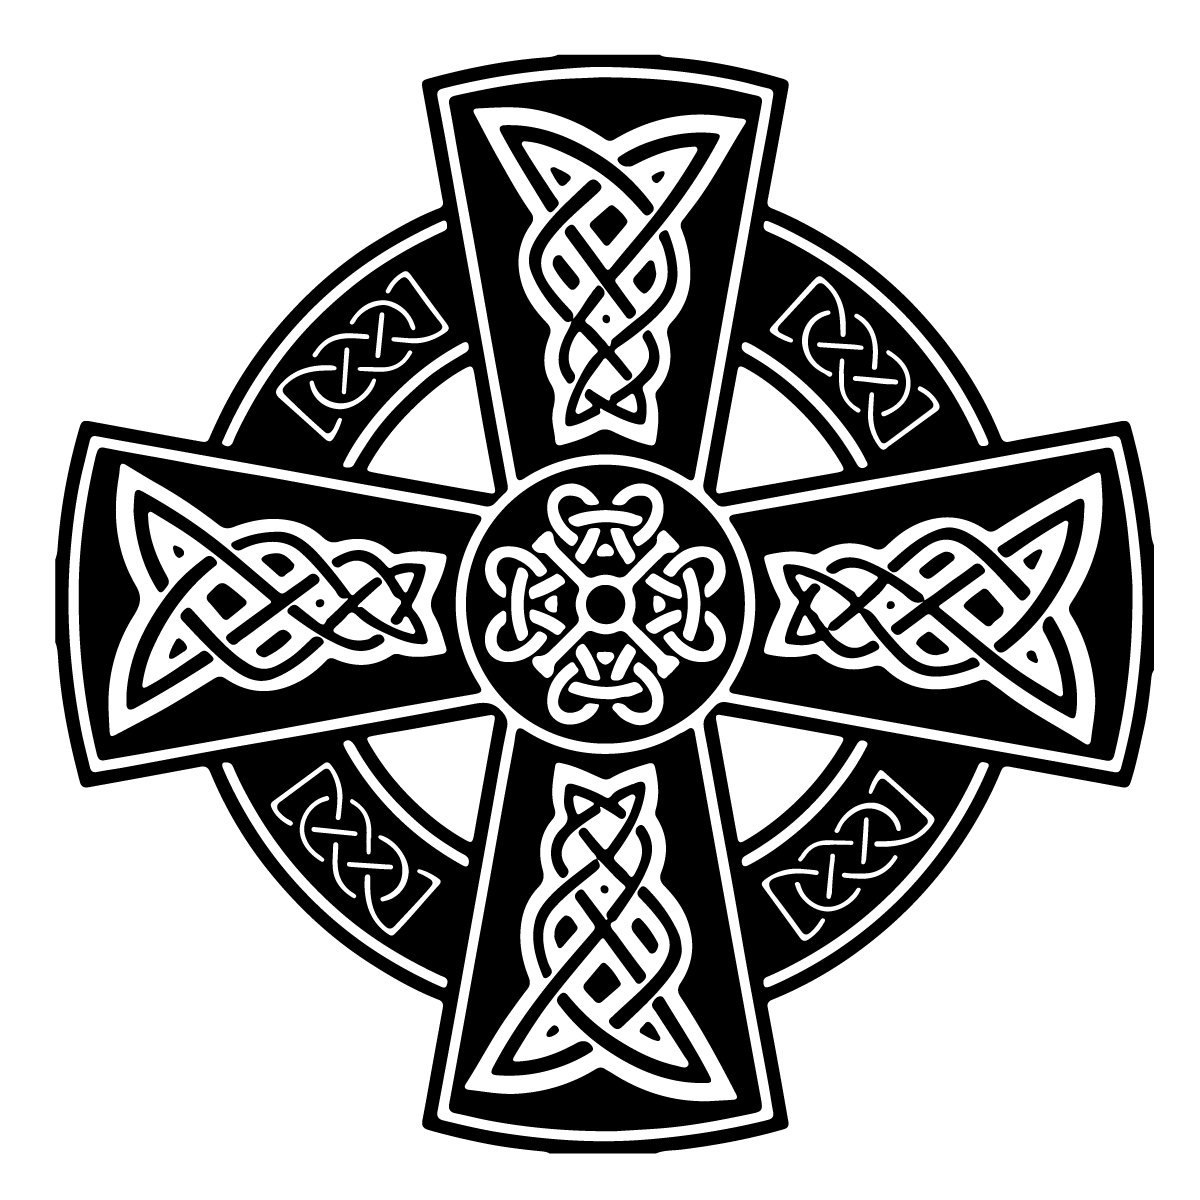 The Celtic Cross Irish Cross Meaning And Symbolism Mythologian